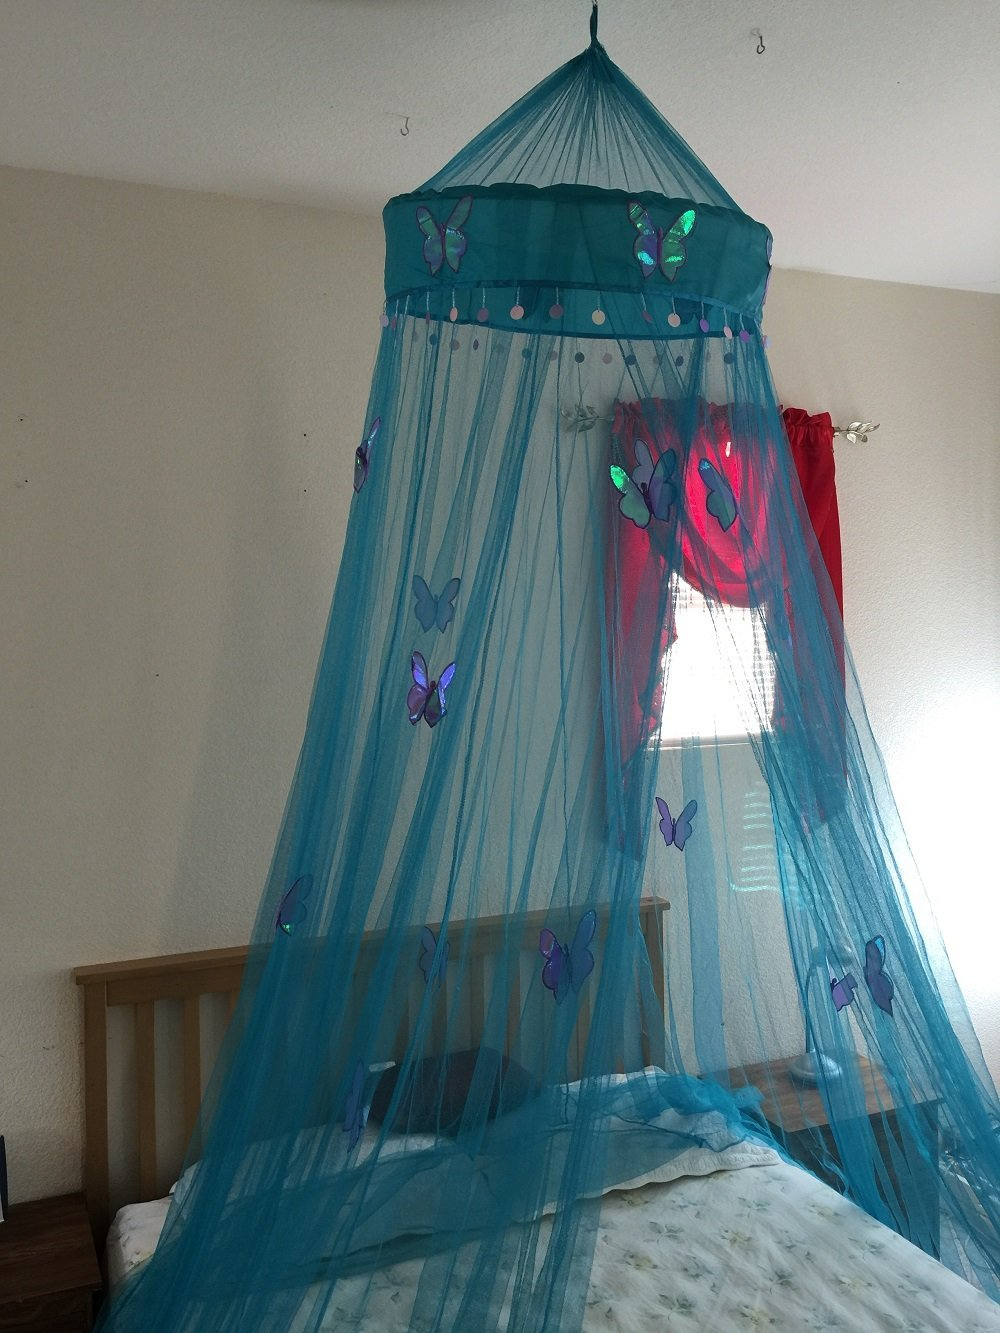 Full Octorose /® Round Hoop Bed Canopy Netting Mosquito Net Fit Crib Queen Twin King Purple